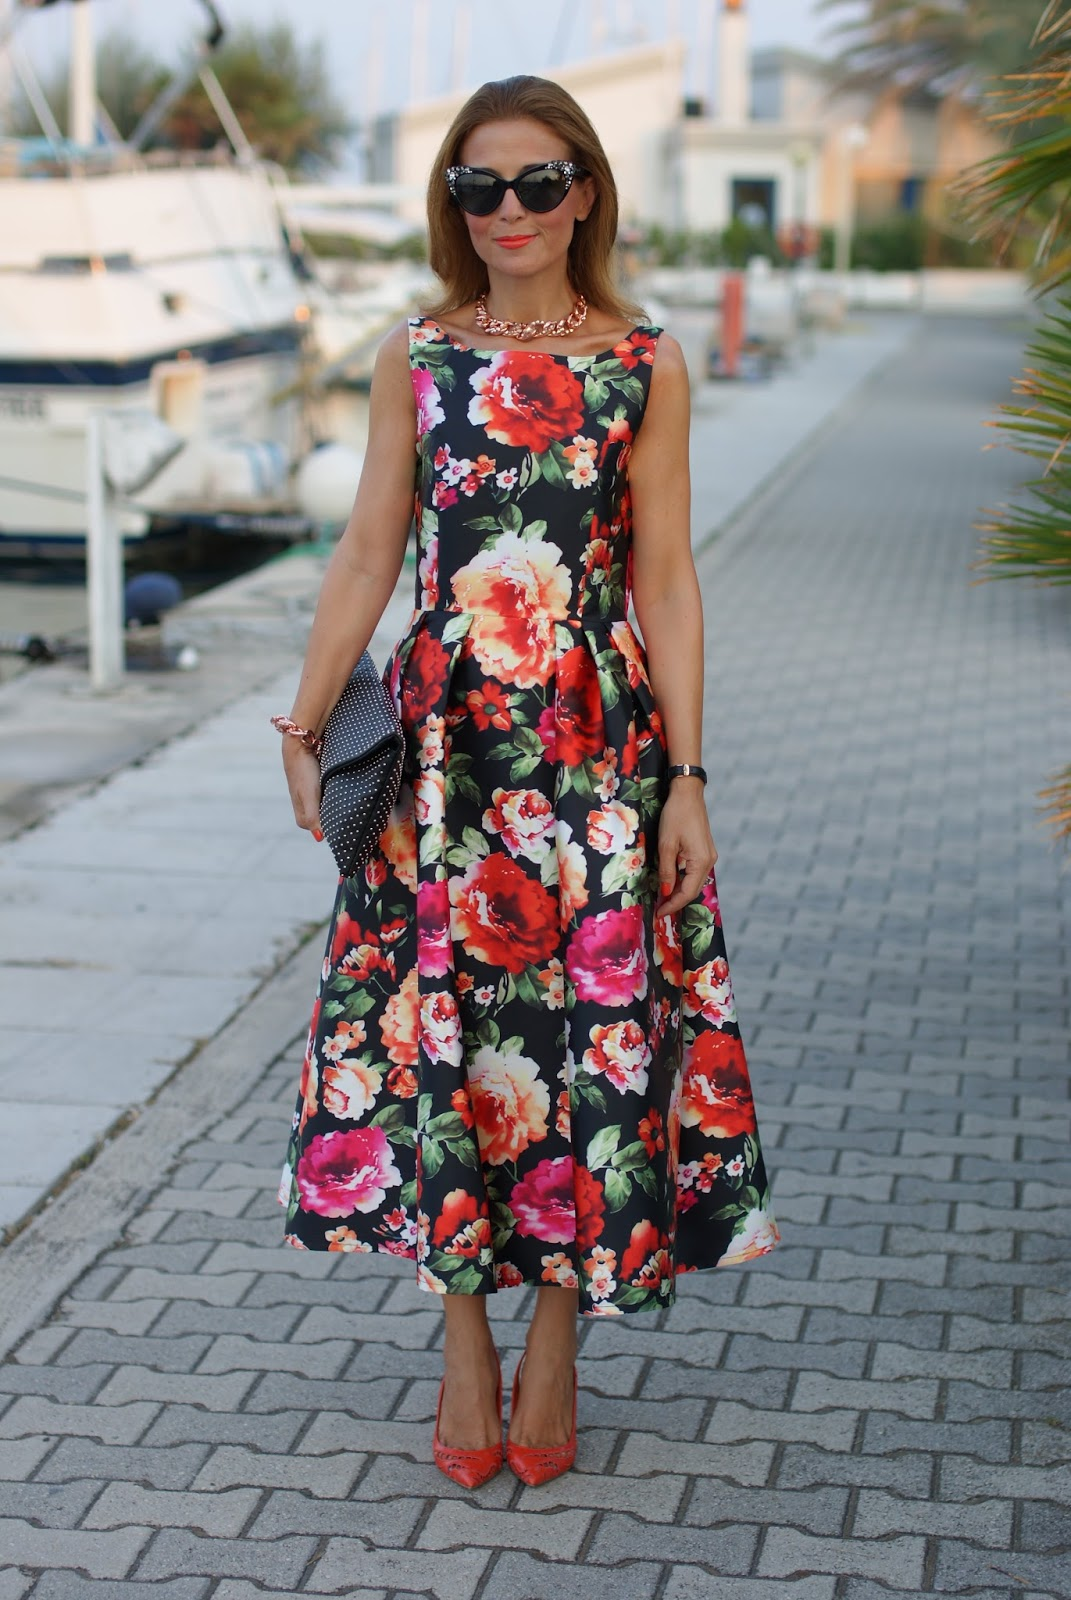 50s style retro floral chic dress and Le Silla orange heels on Fashion and Cookies fashion blog